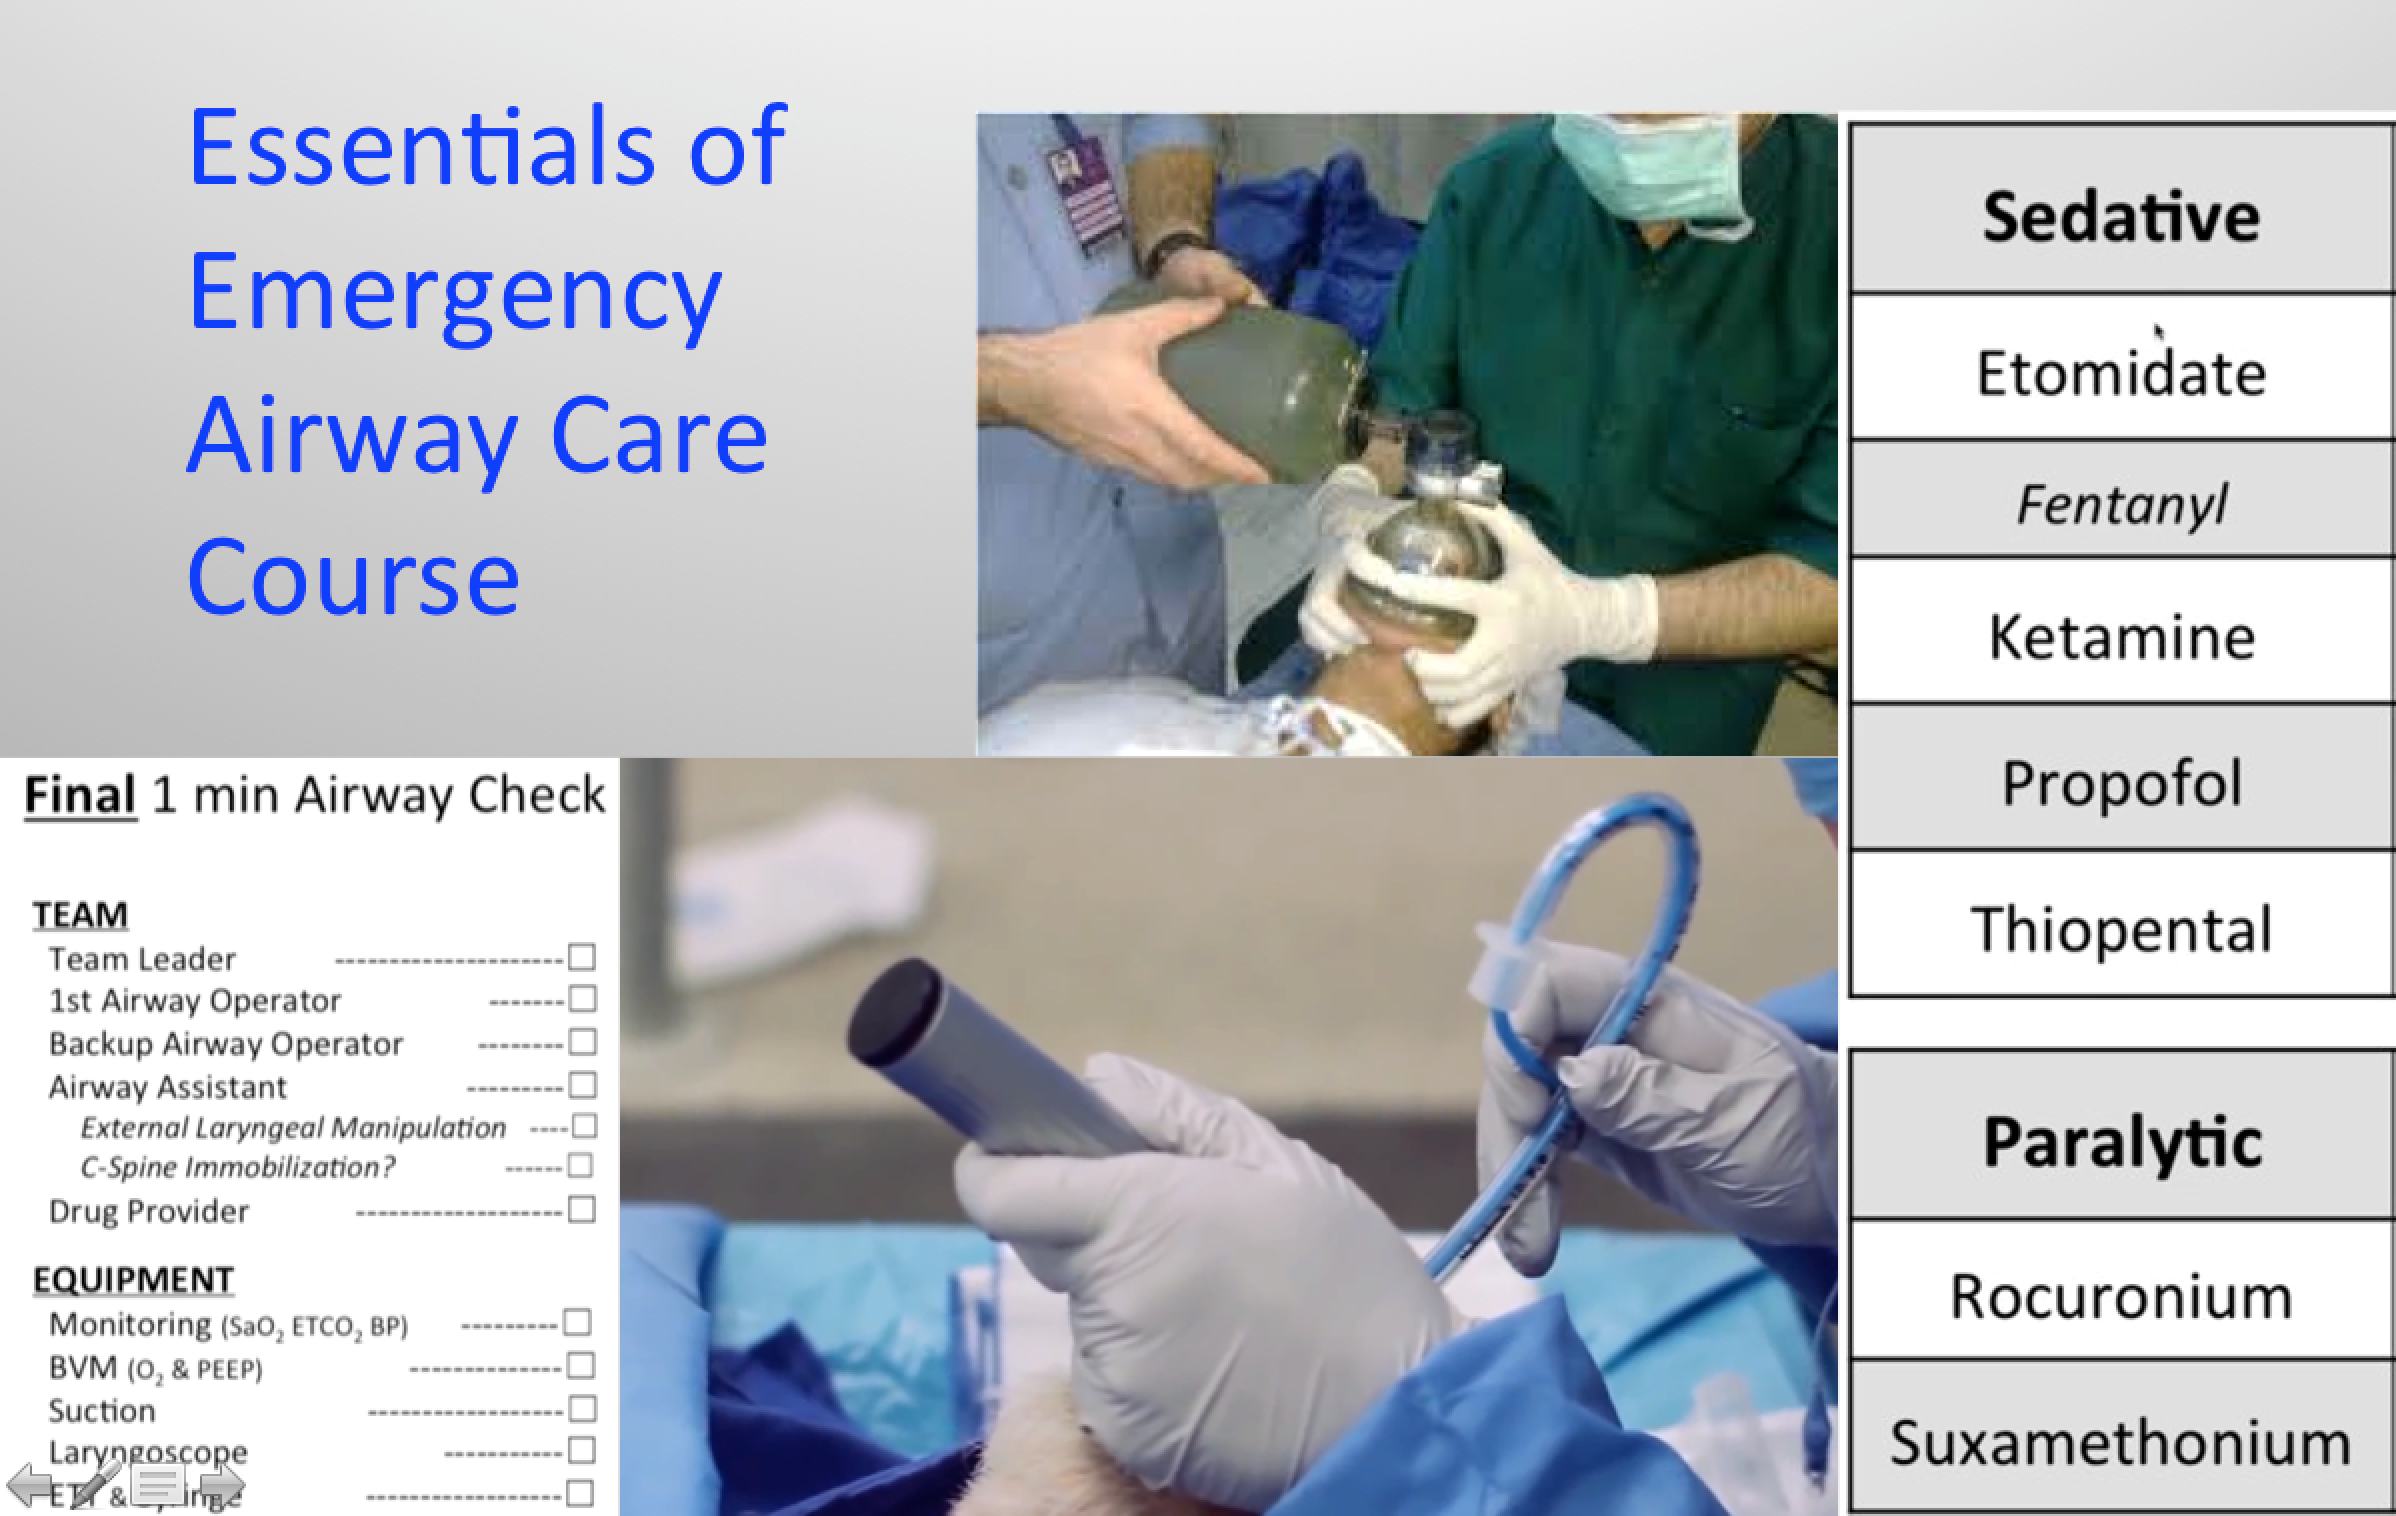 A full video lecture course for Emergency Airway care